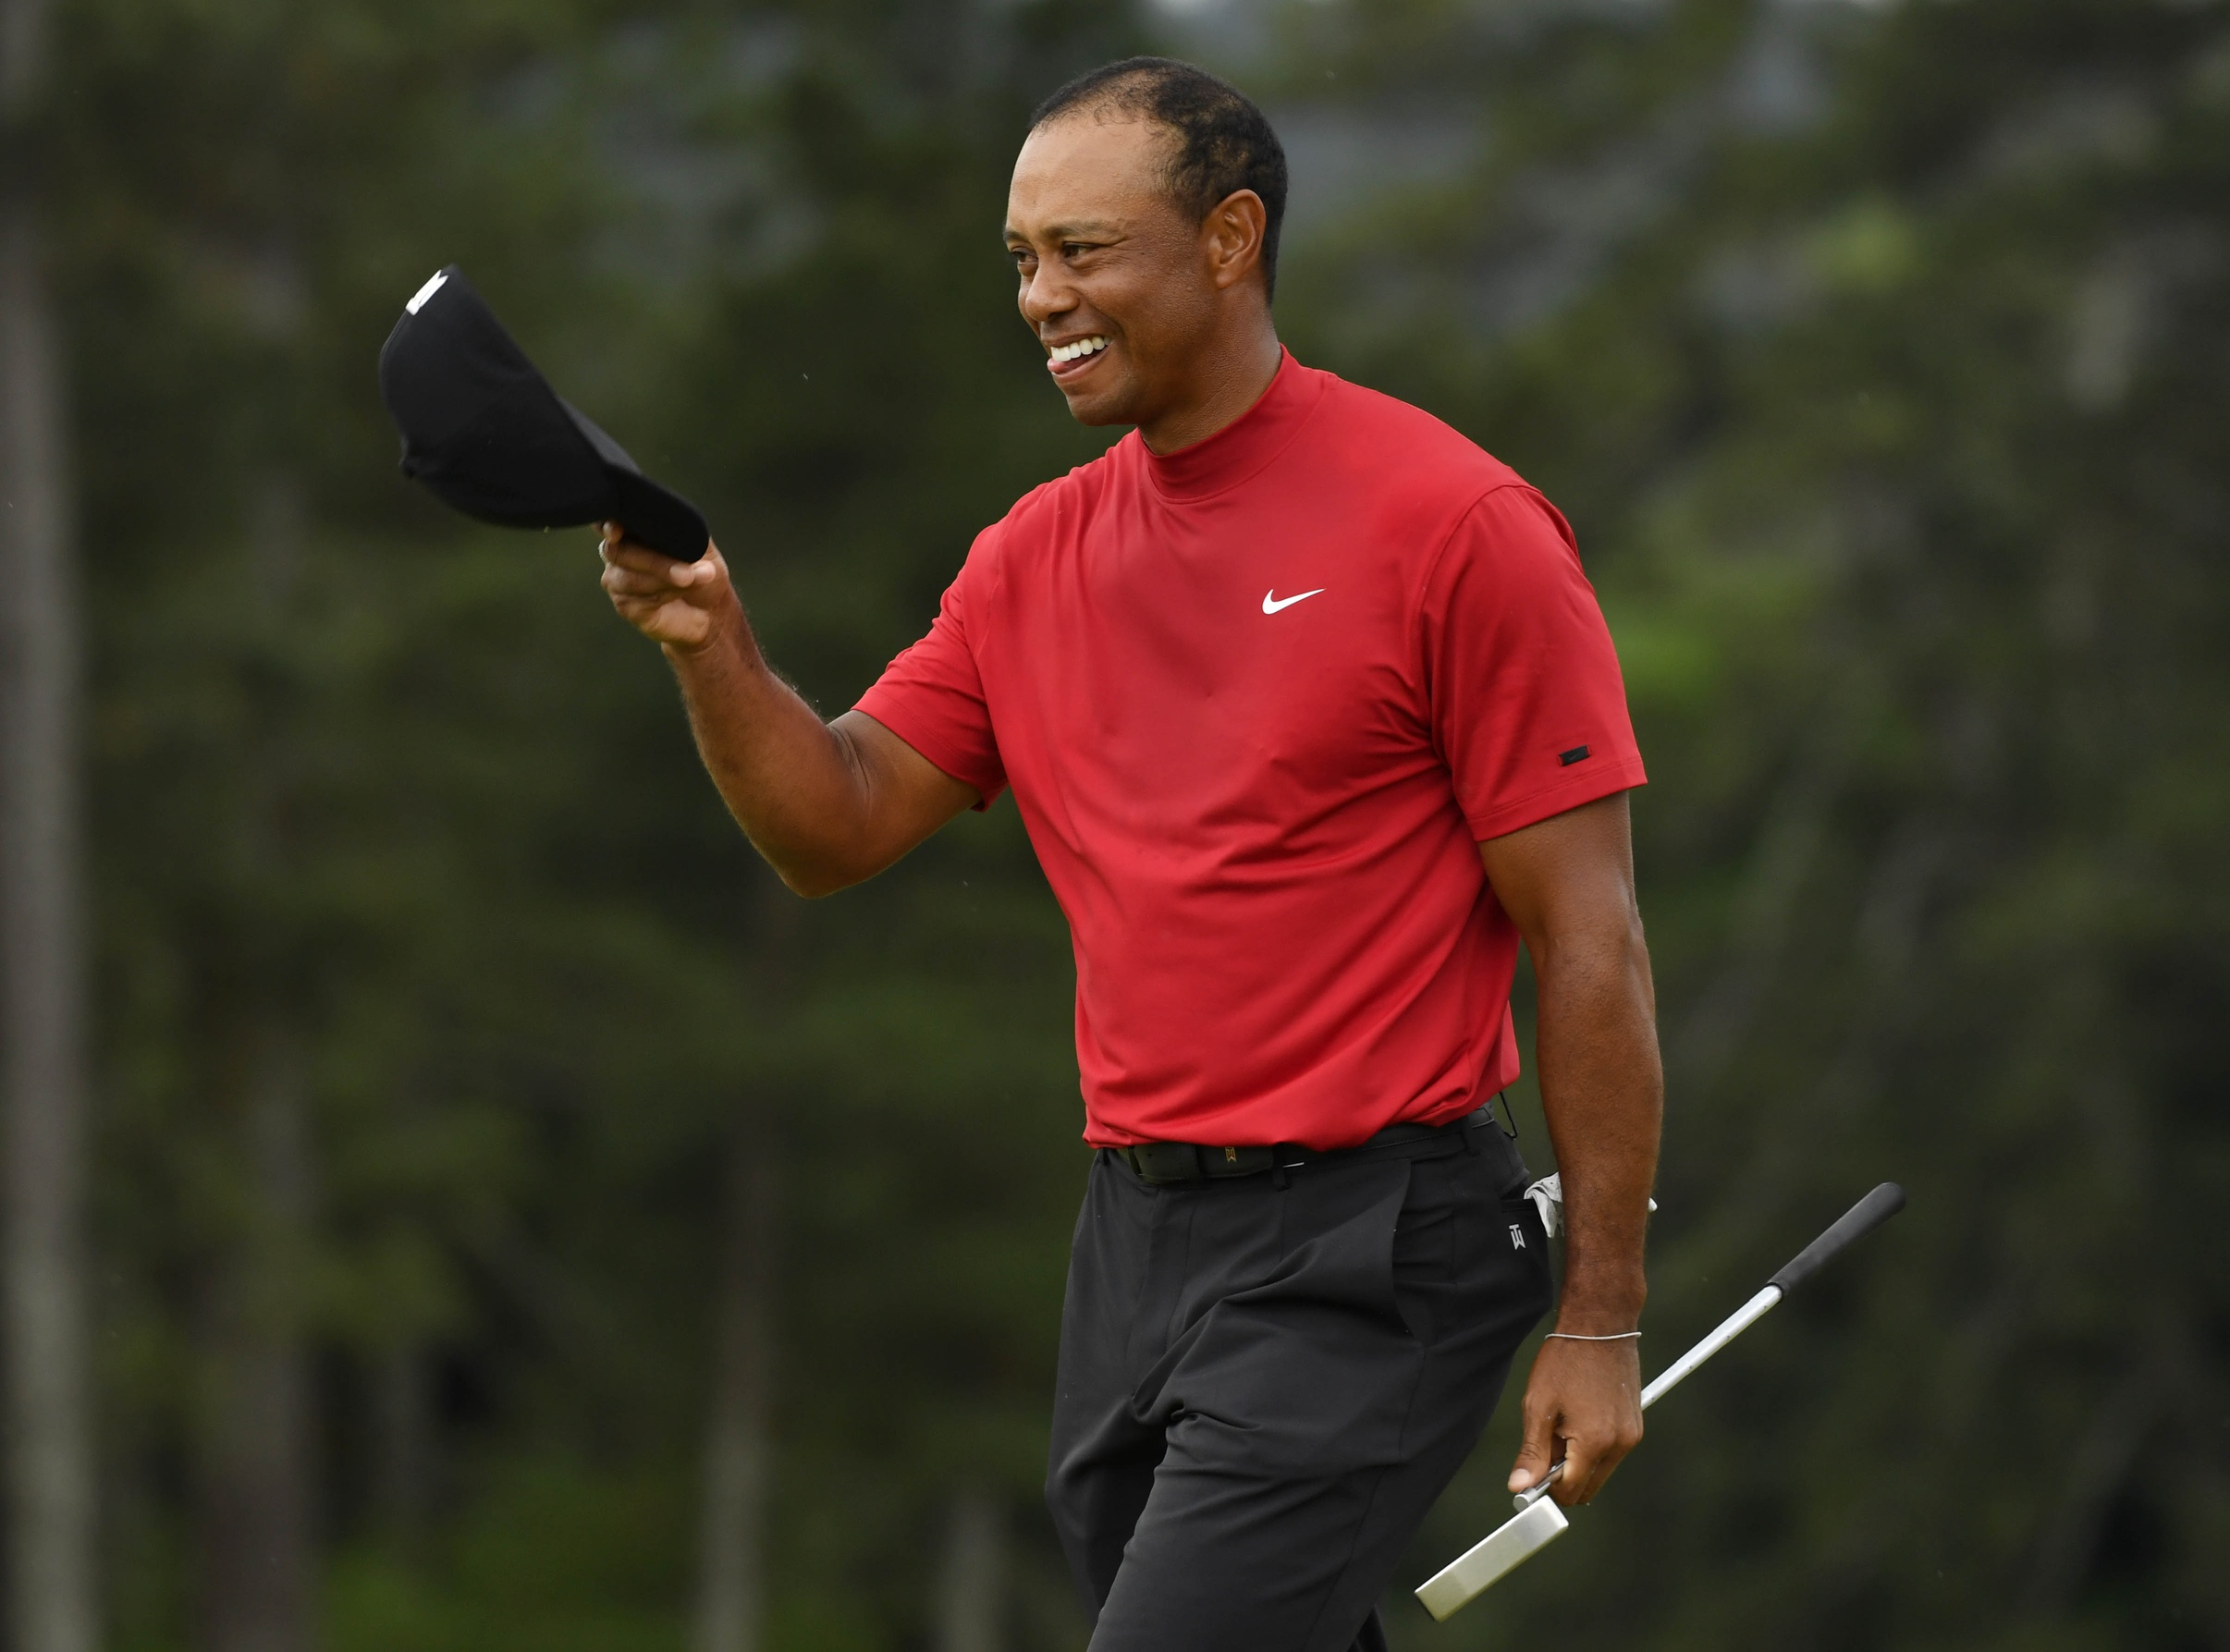 After $1.19M from Masters, bettor eyes even bigger Tiger Woods payday